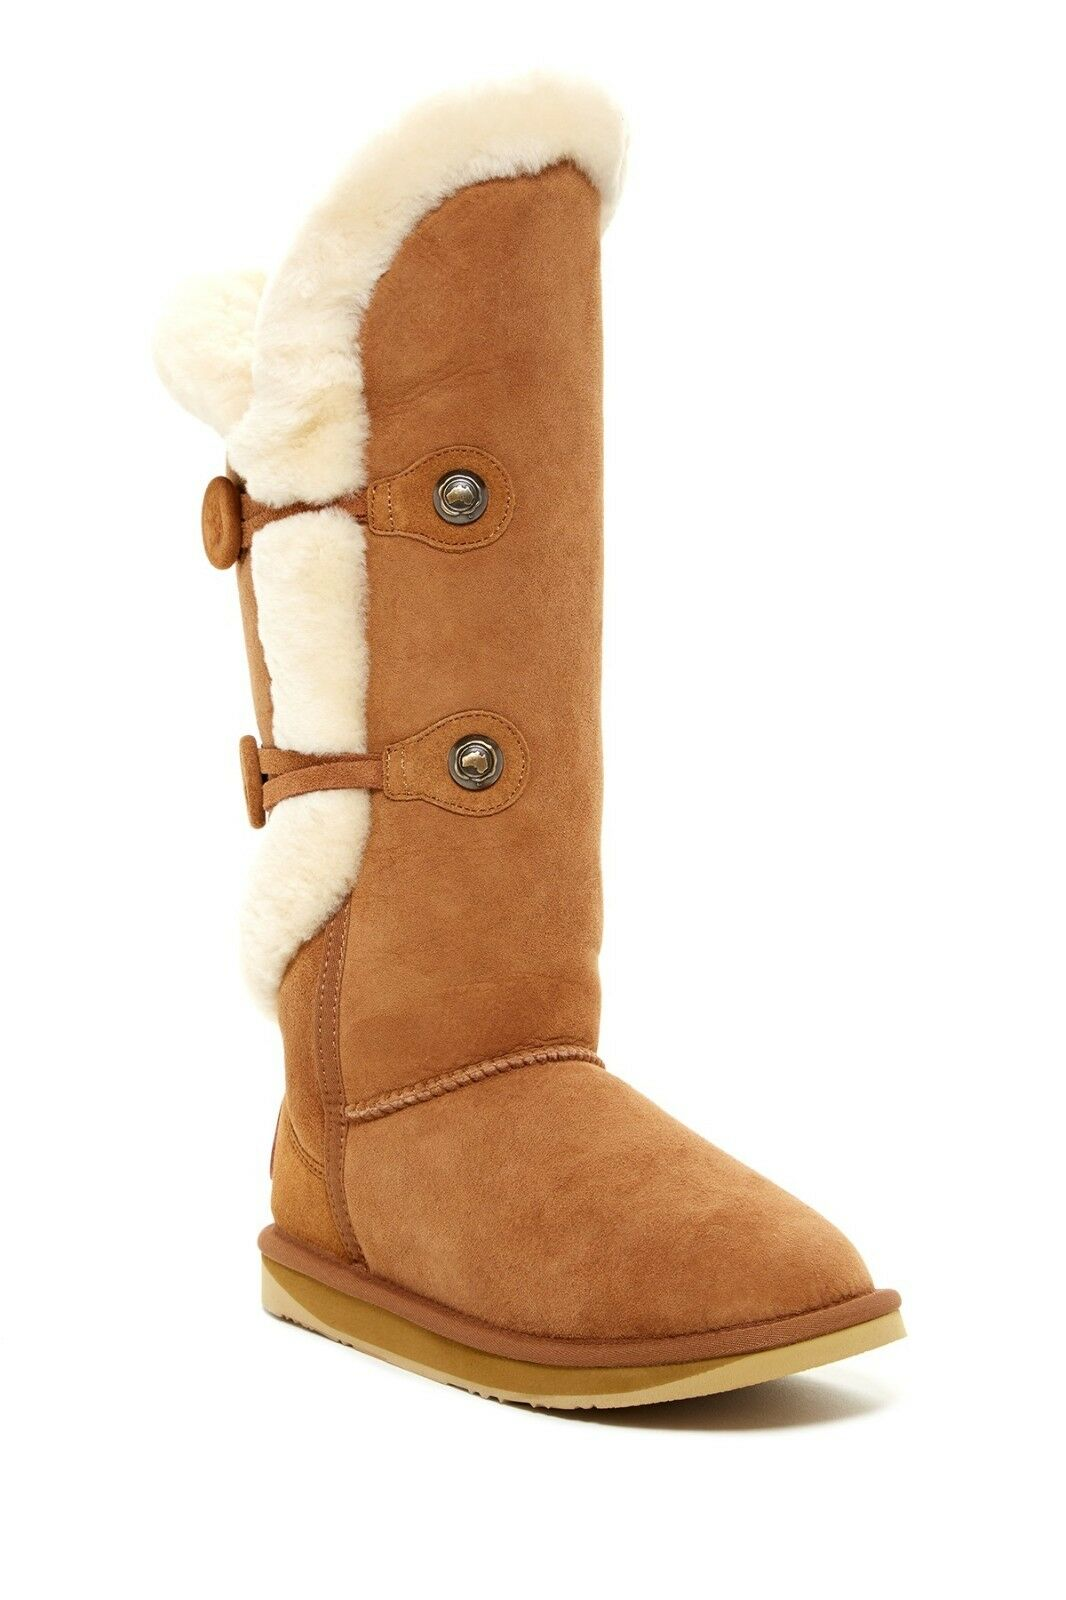 Australia Luxe Collective Nordic Shearling Tall Boot US Size 11 Chestnut NWB